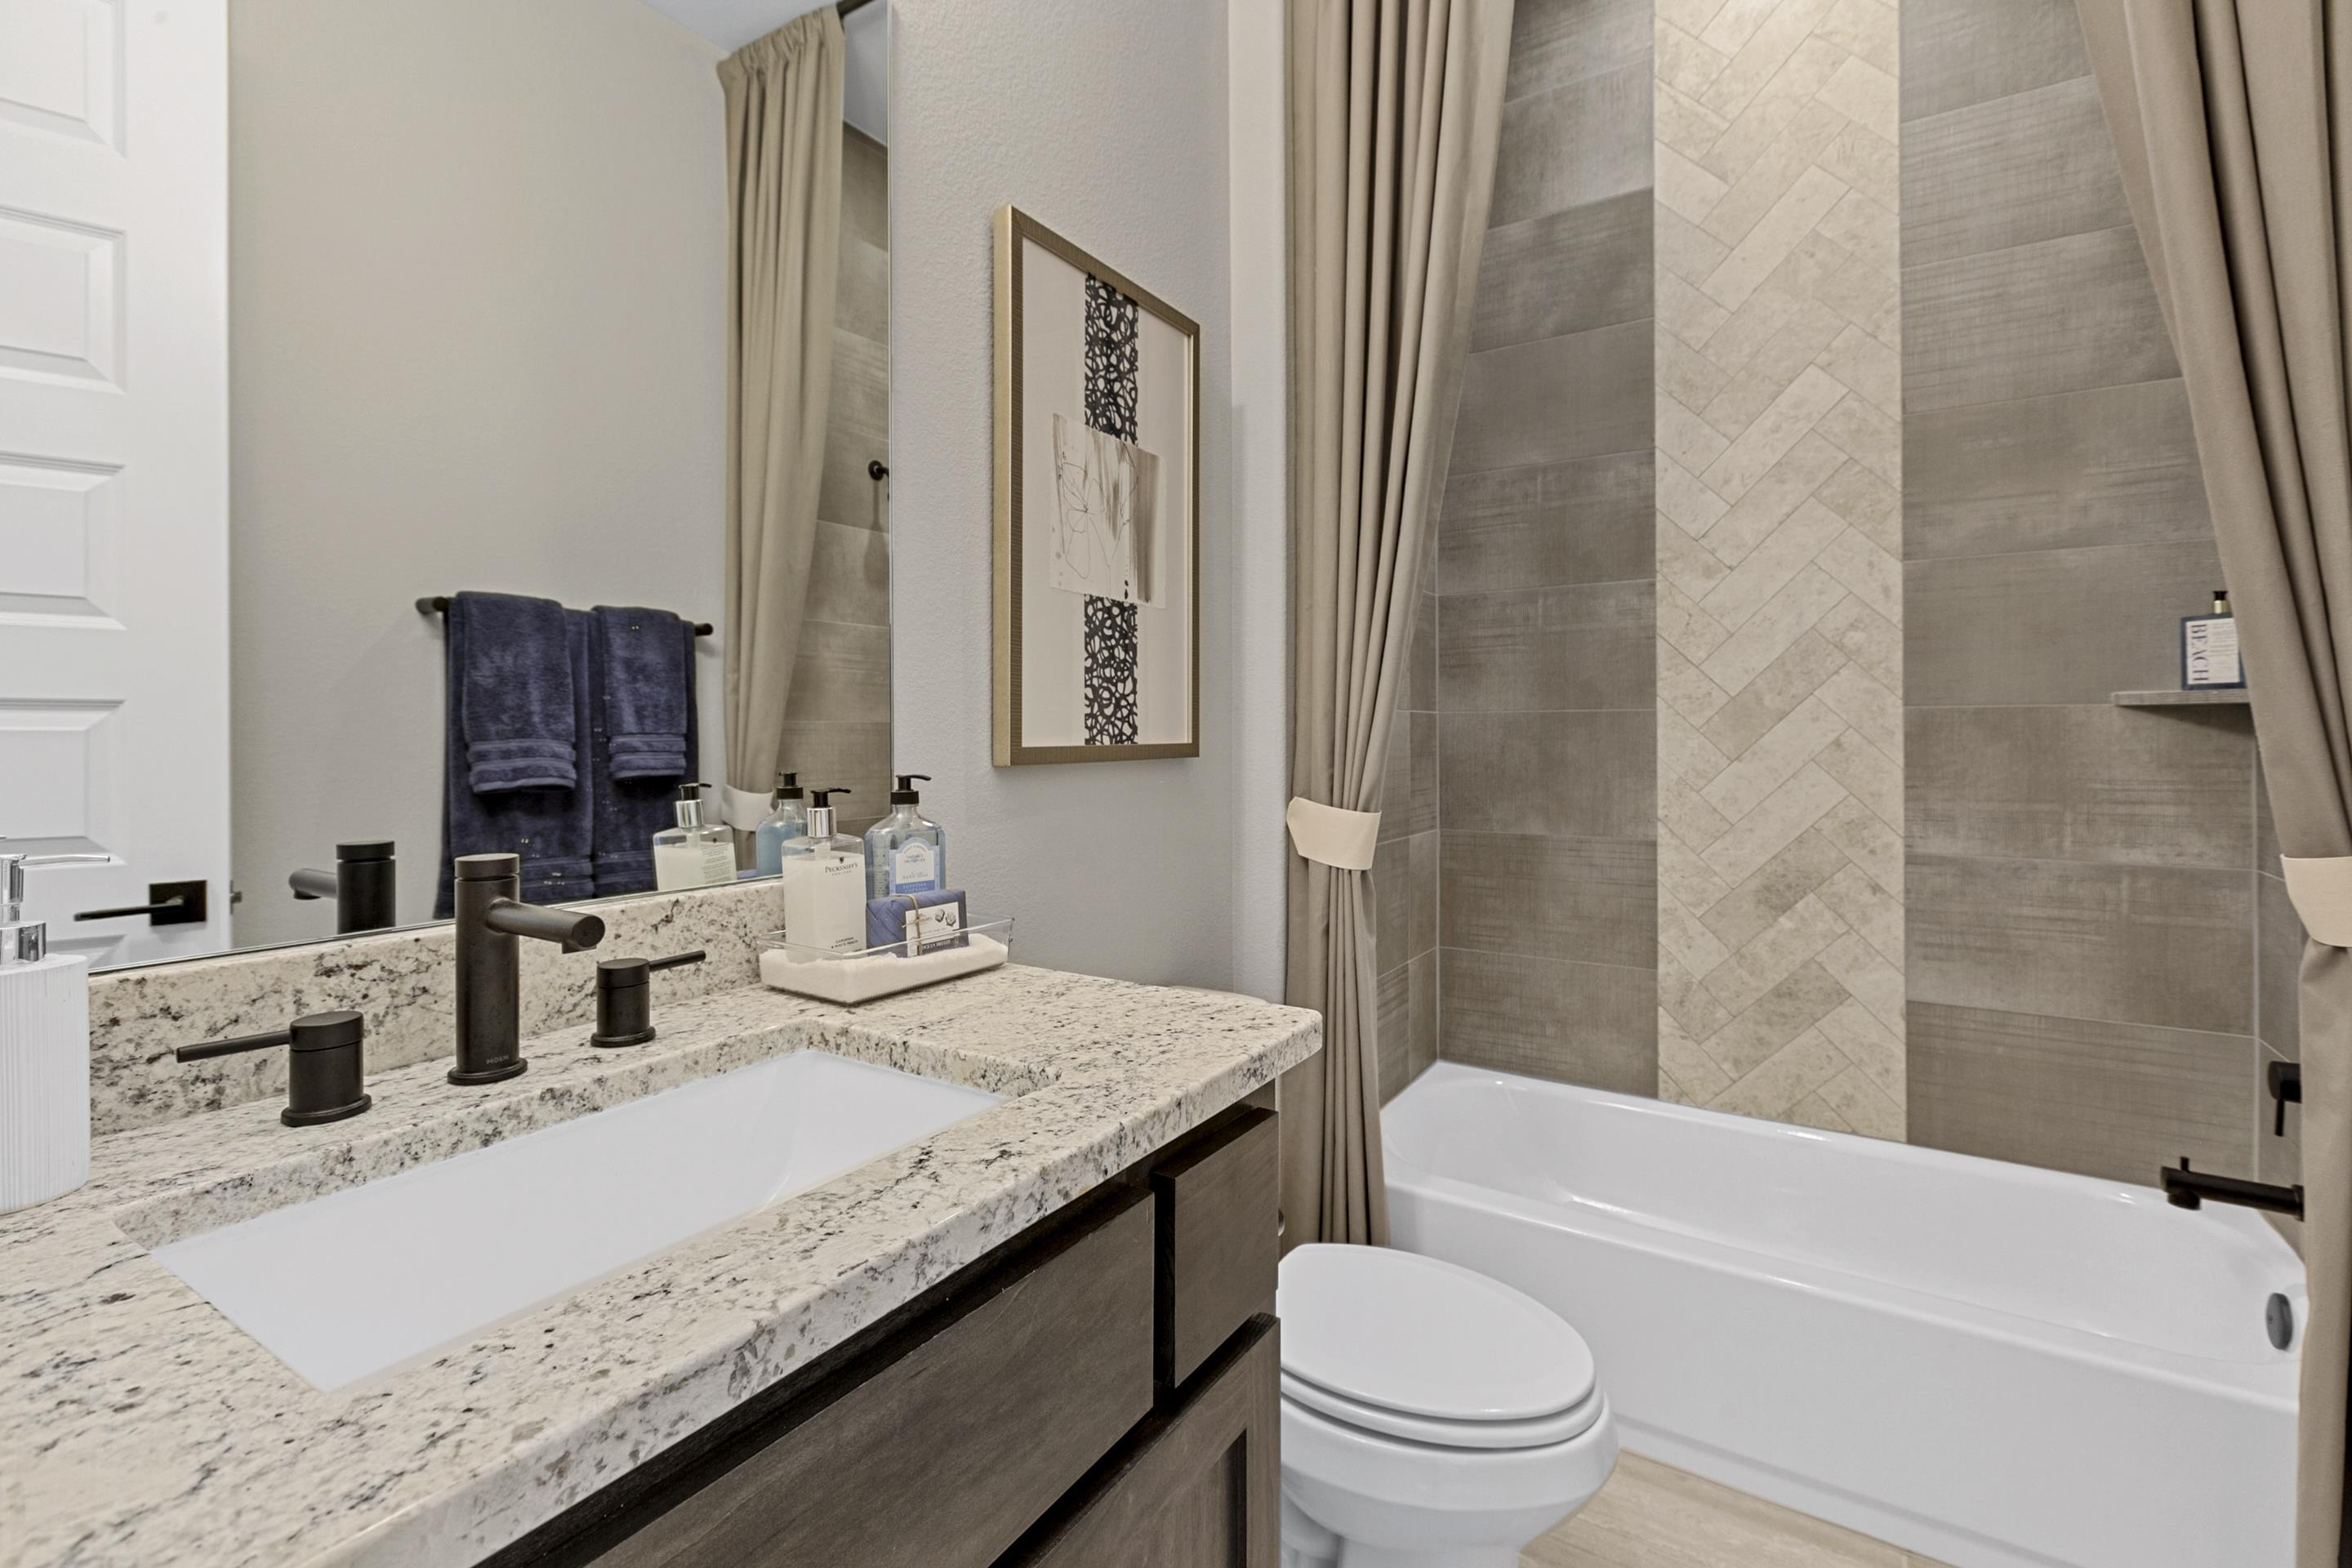 Bathroom featured in the Copperleaf By Hill Country Artisan Homes in Austin, TX